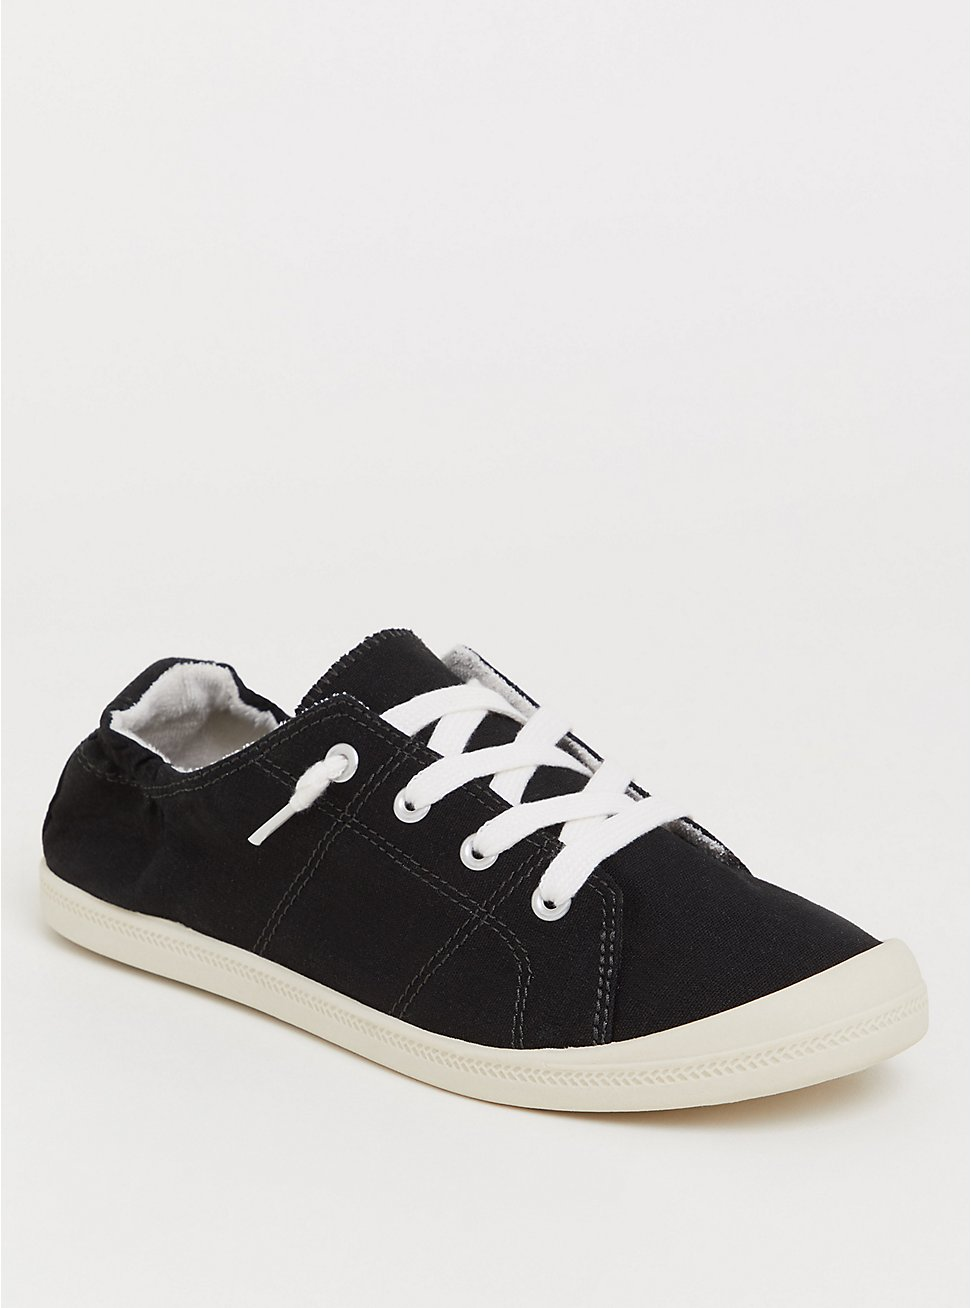 Riley - Black Ruched Sneaker (WW), BLACK, hi-res